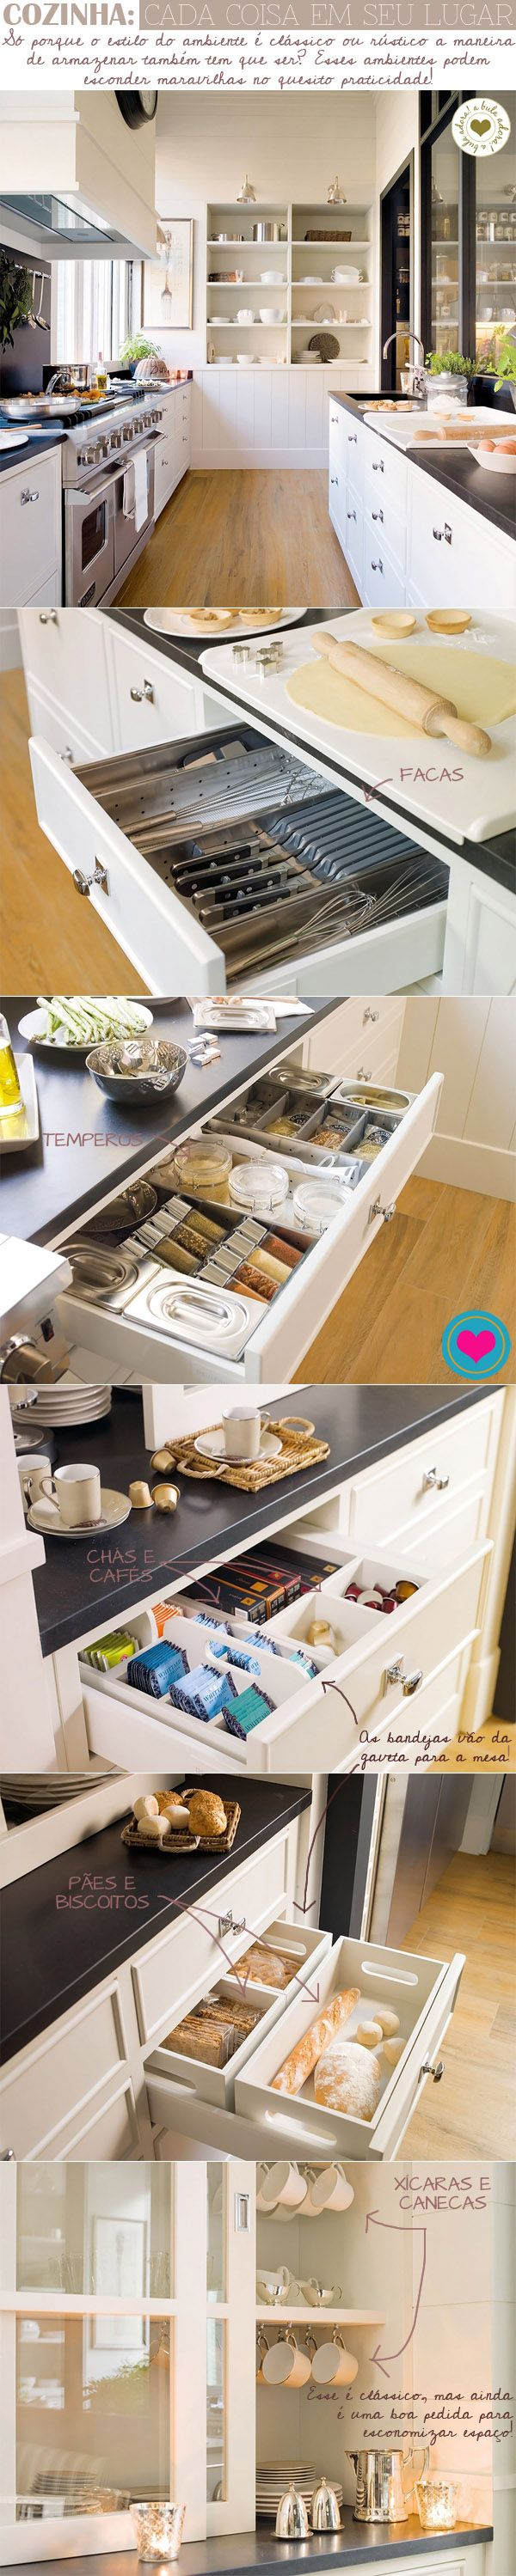 kitchen organisation - perhaps a little too organised even by my standards! omg perfection